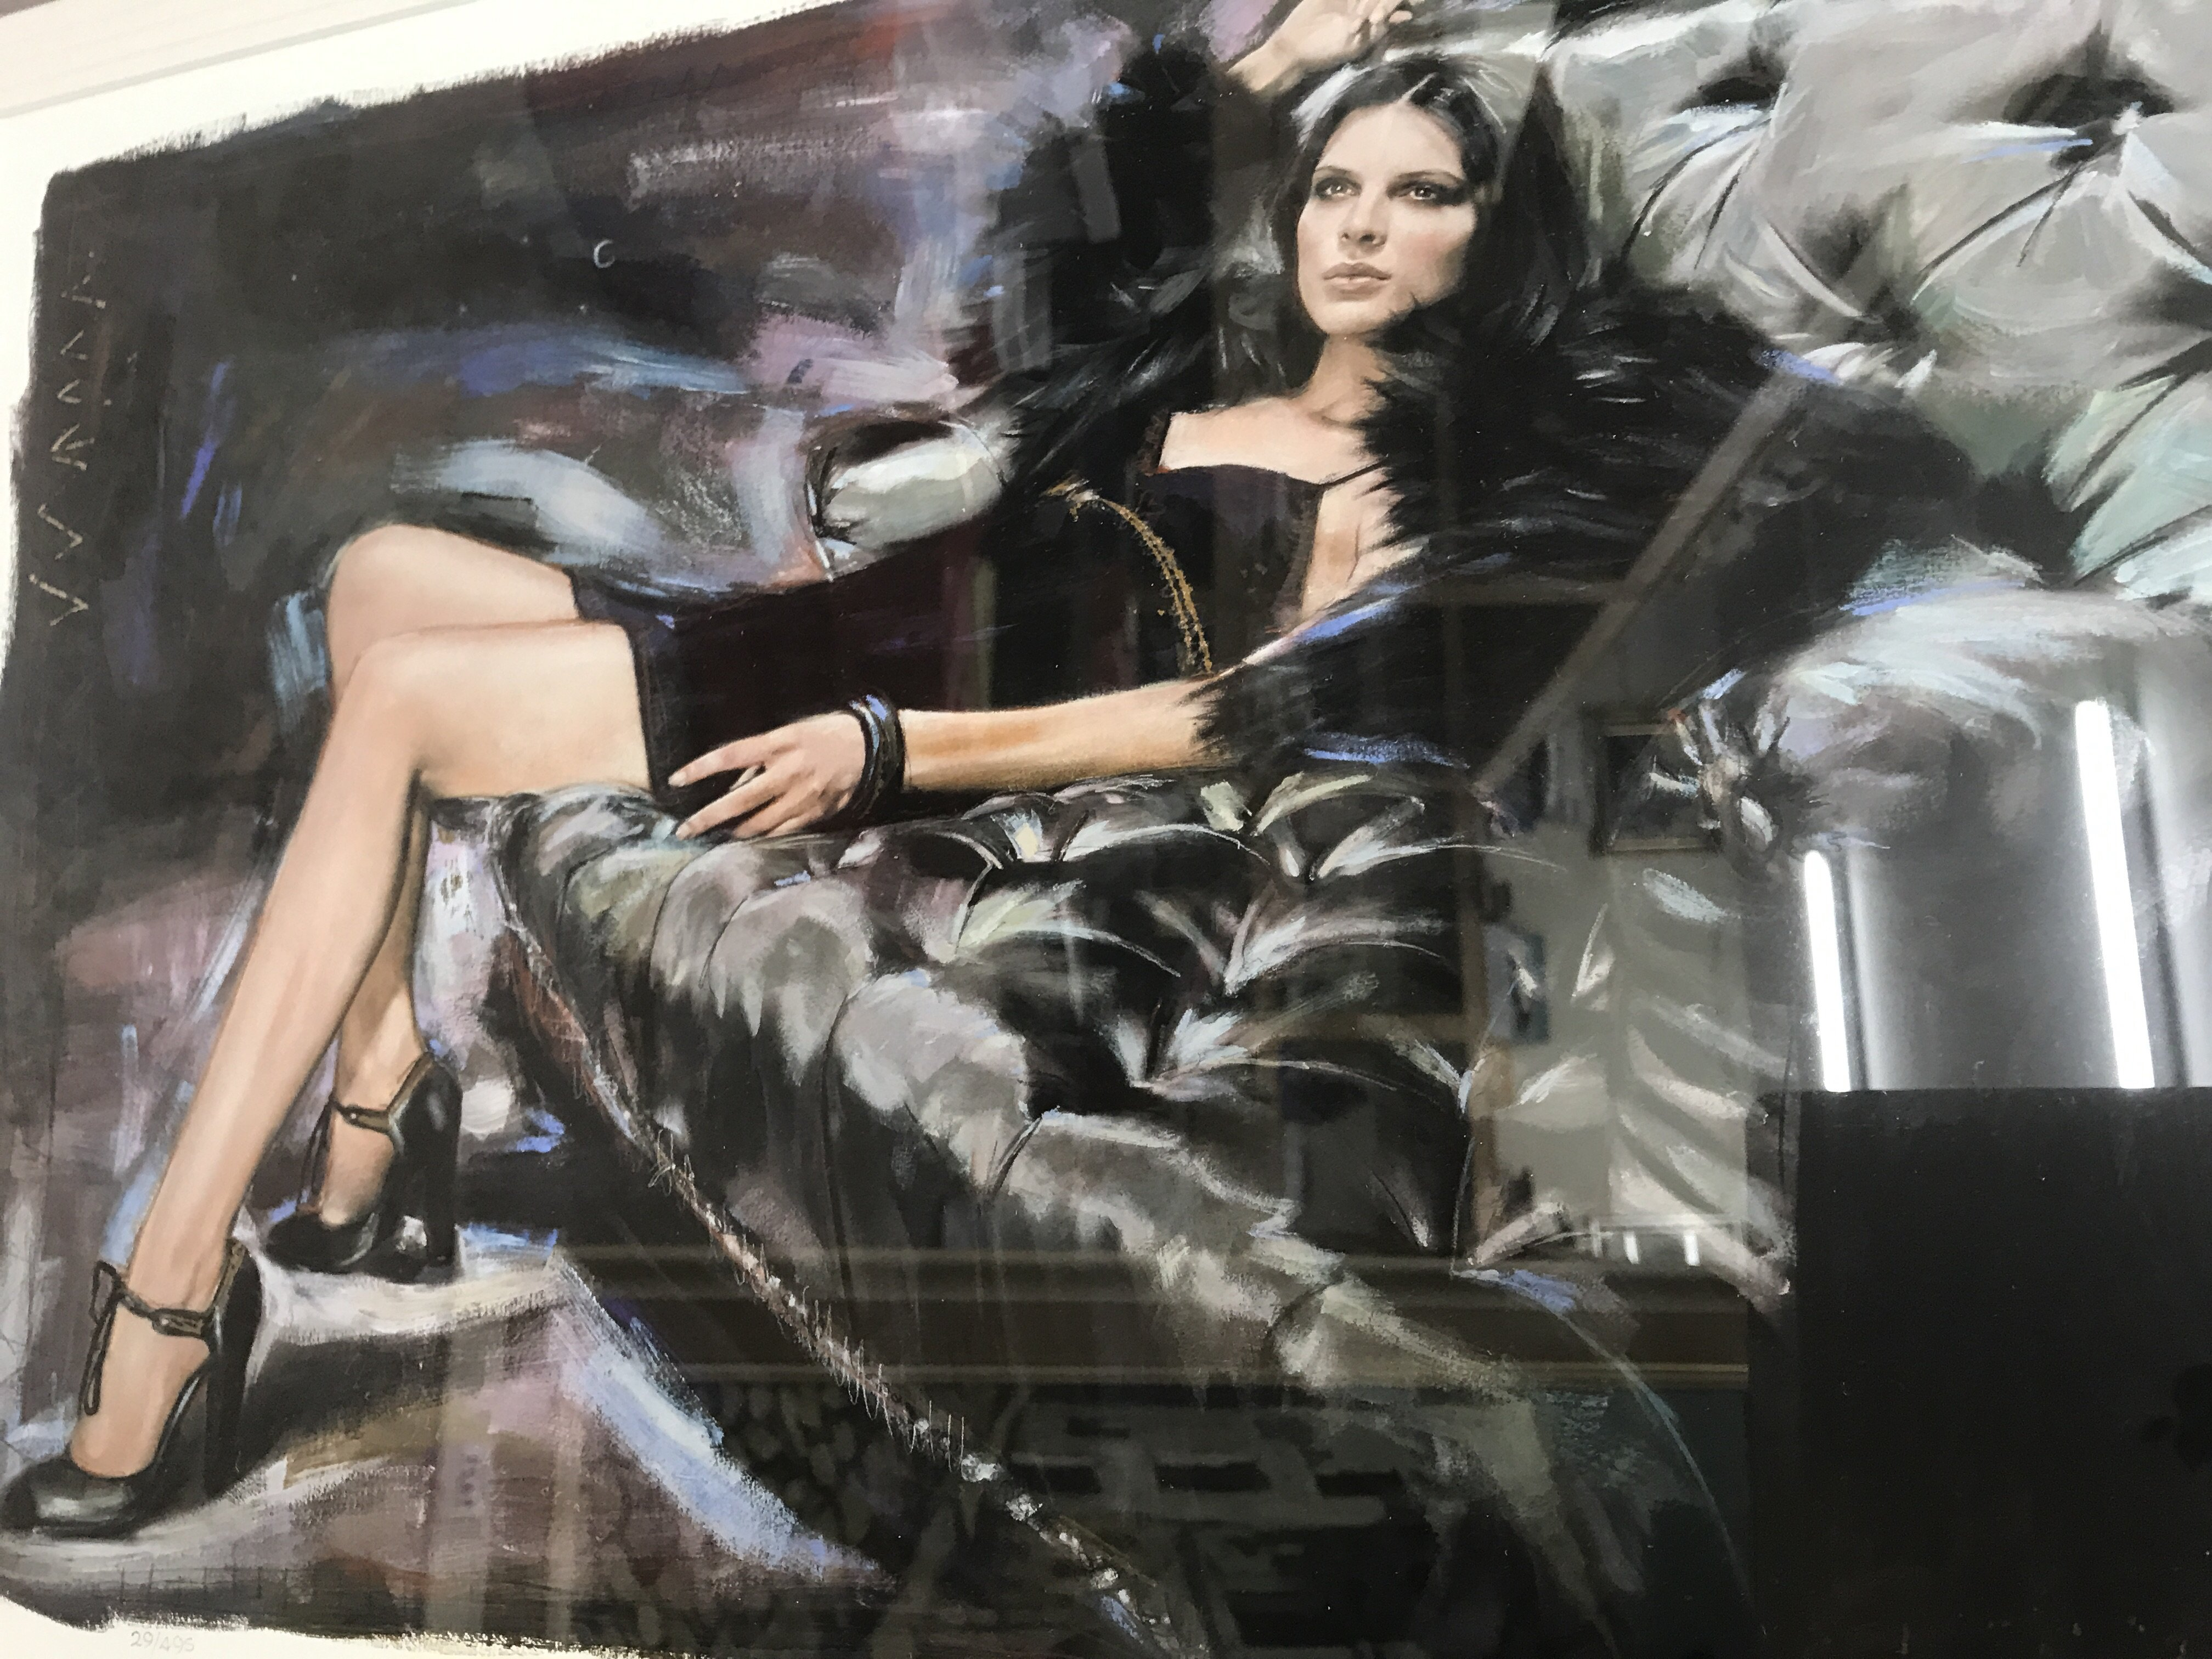 Lot 1208 - A limited edition print midnight secret by rob Hef